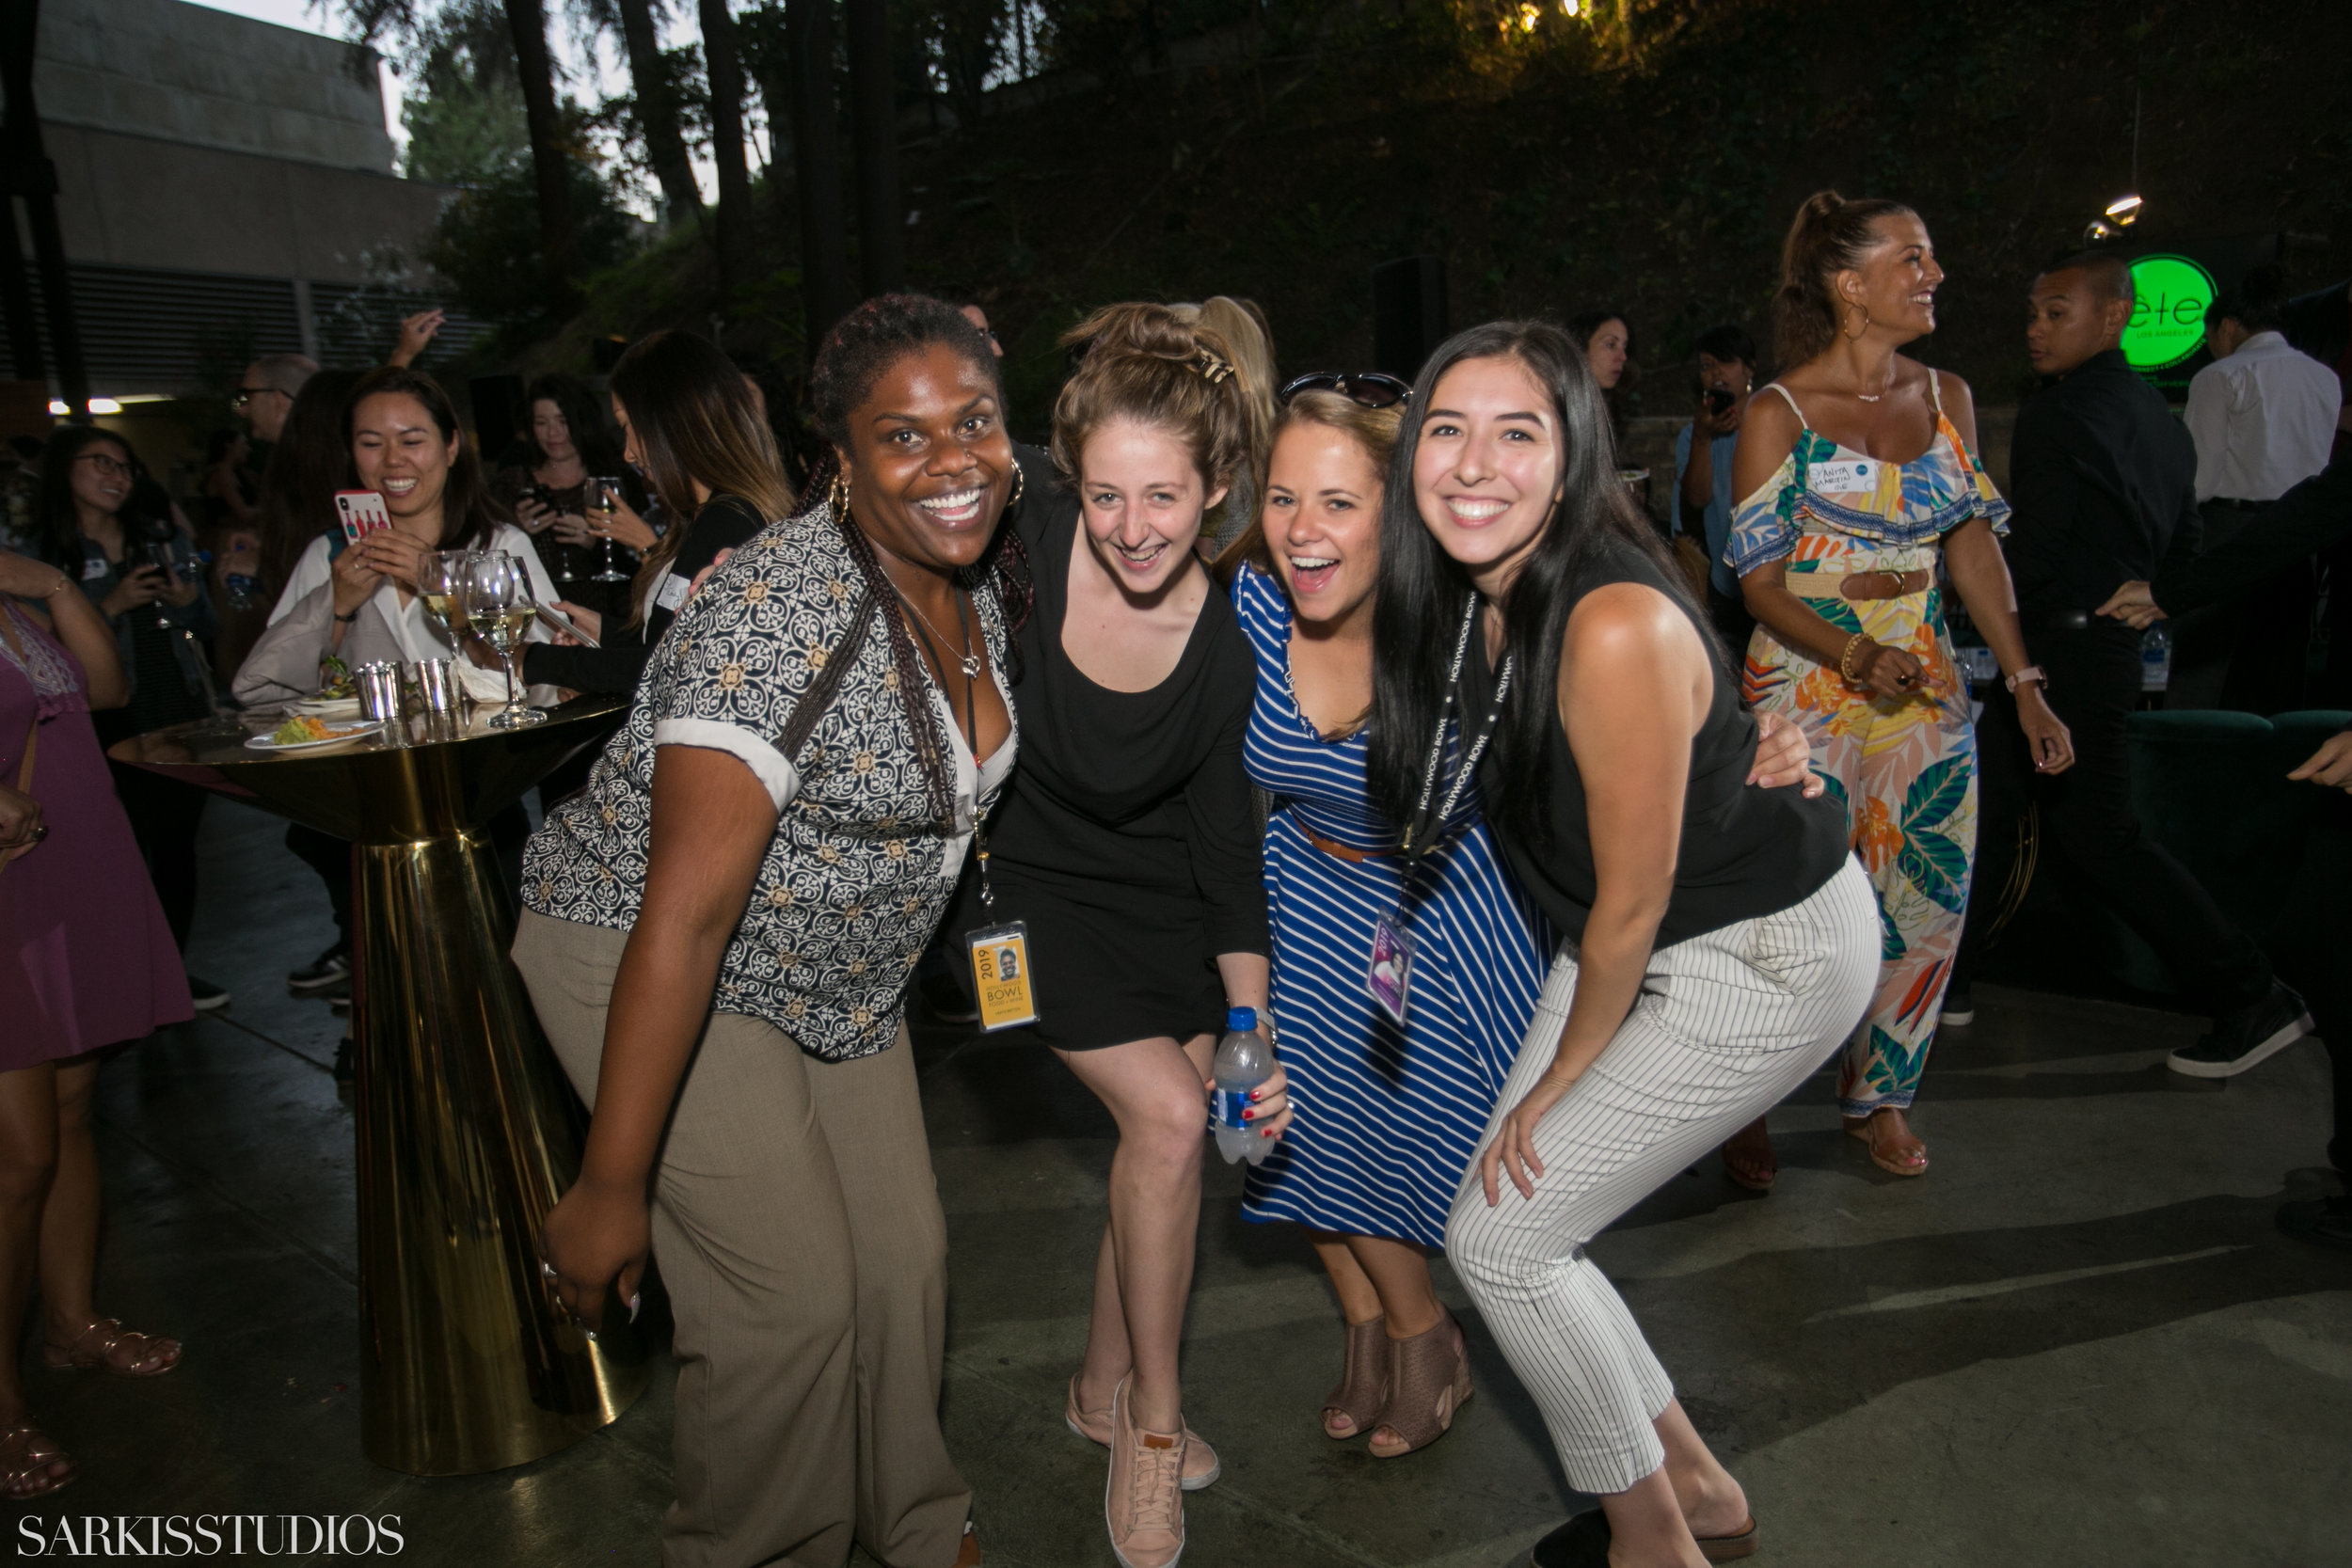 August 13, 2019 - Hosted by Hollywood Bowl Food + Wine & the LA PhilPhotographs by SARKIS STUDIOSClick Here